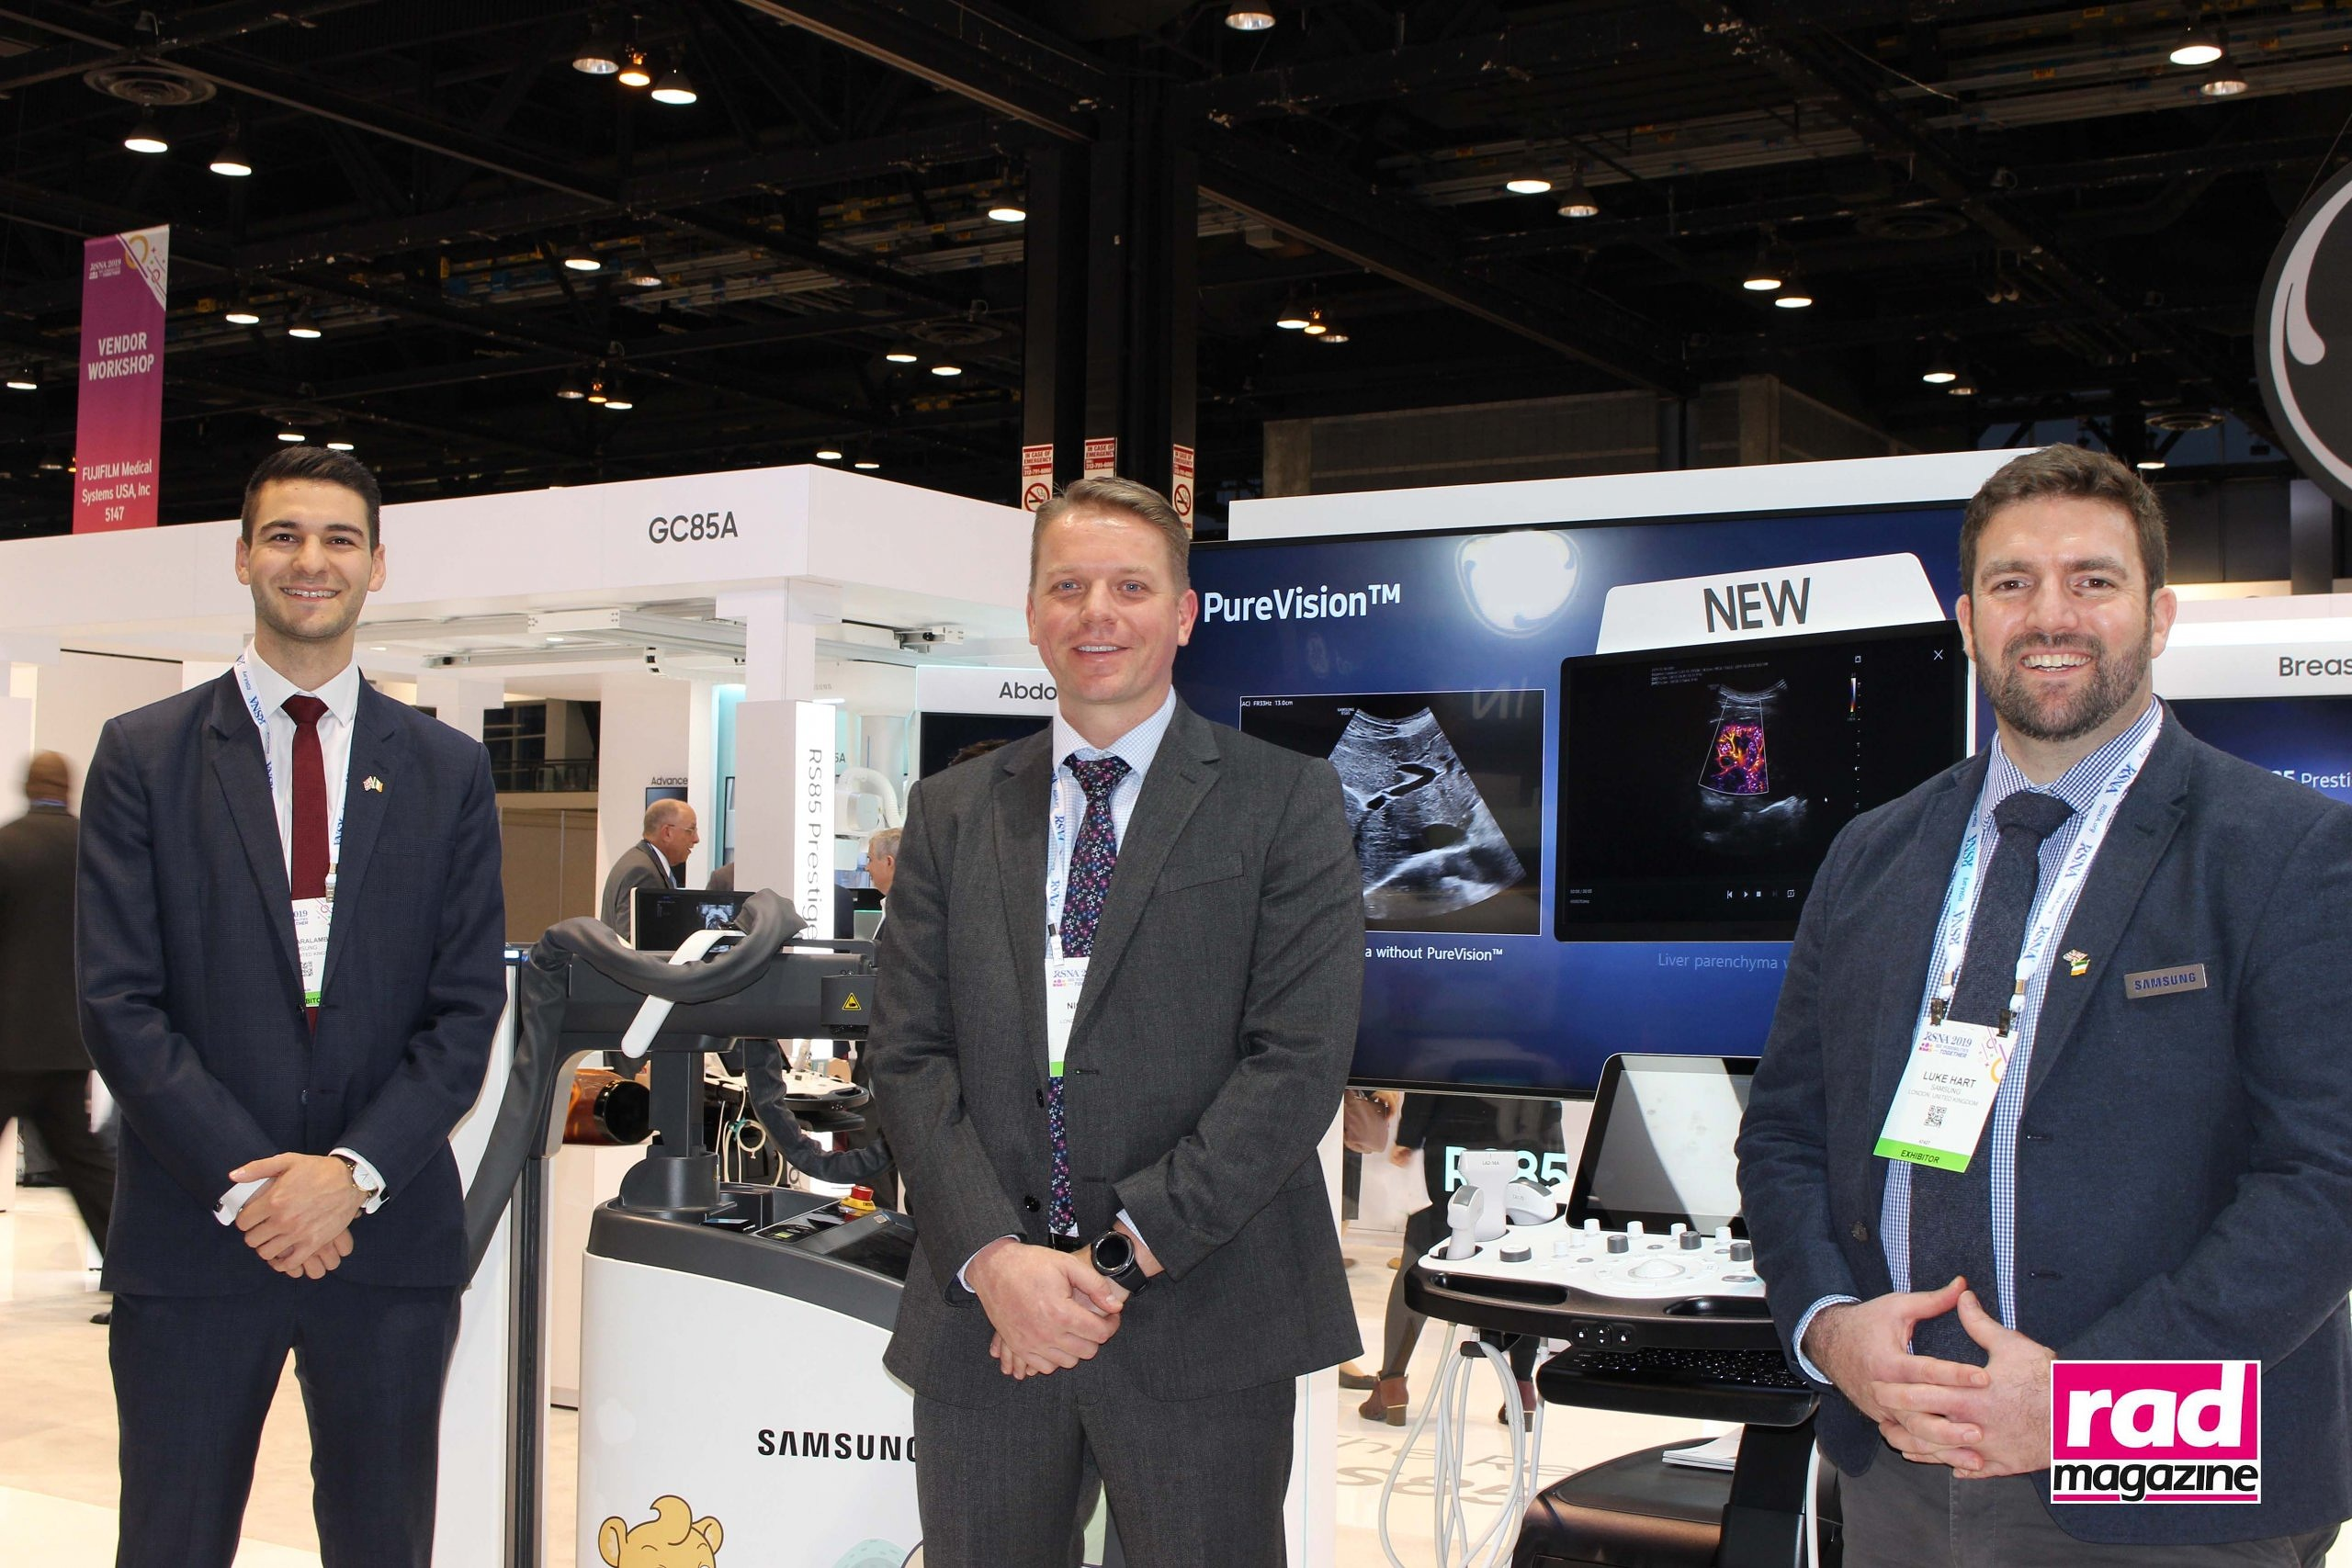 MIS Healthcare and Samsung at RSNA